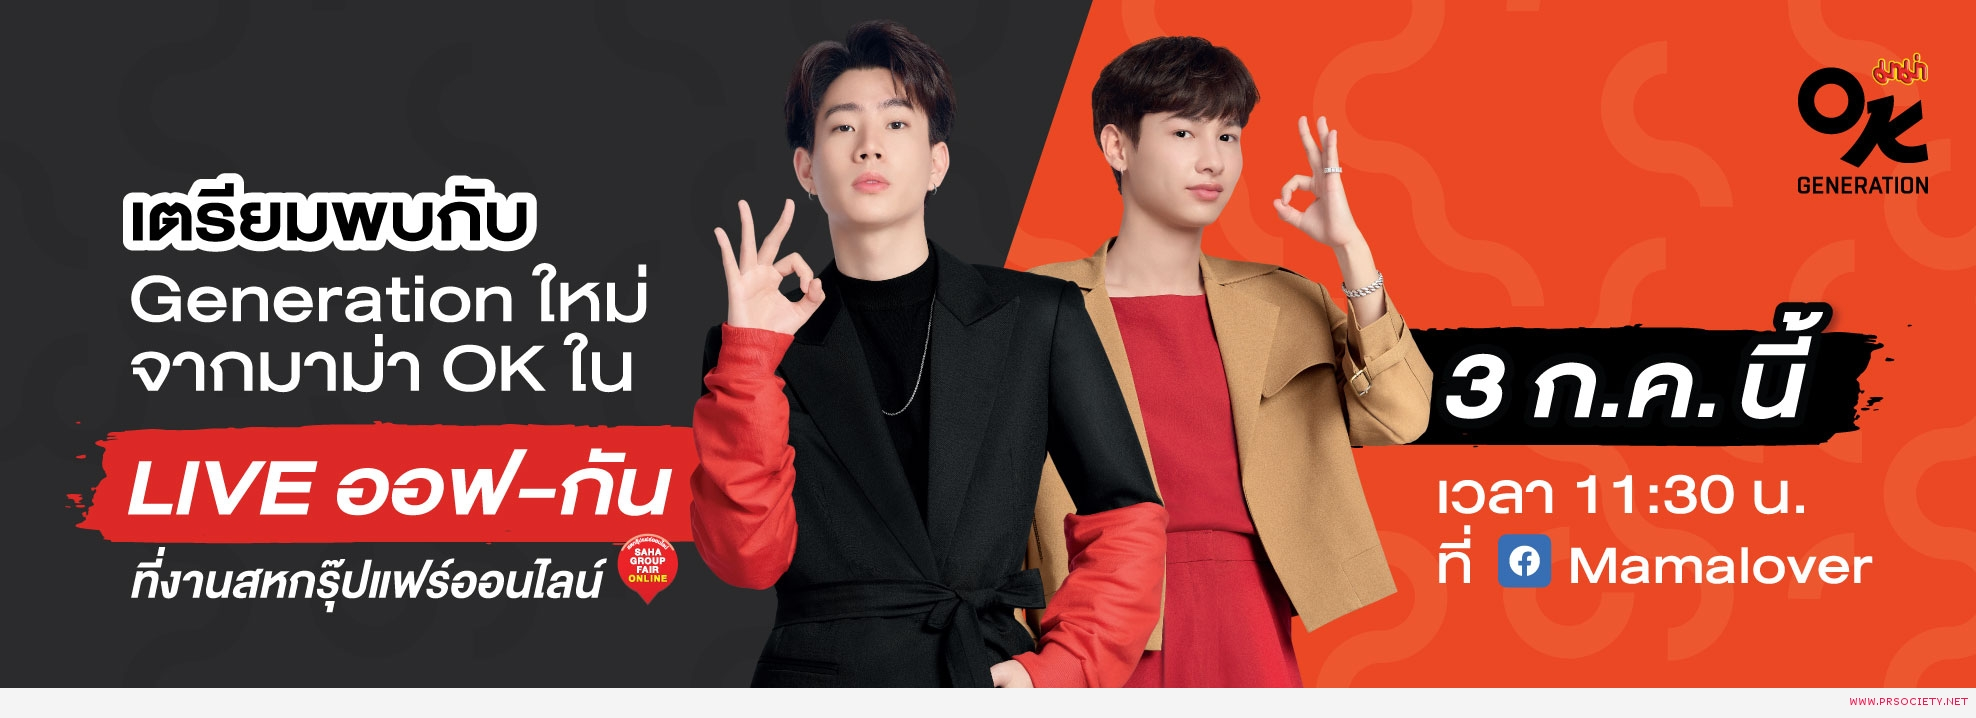 banner-promote_re01-ออฟกัน